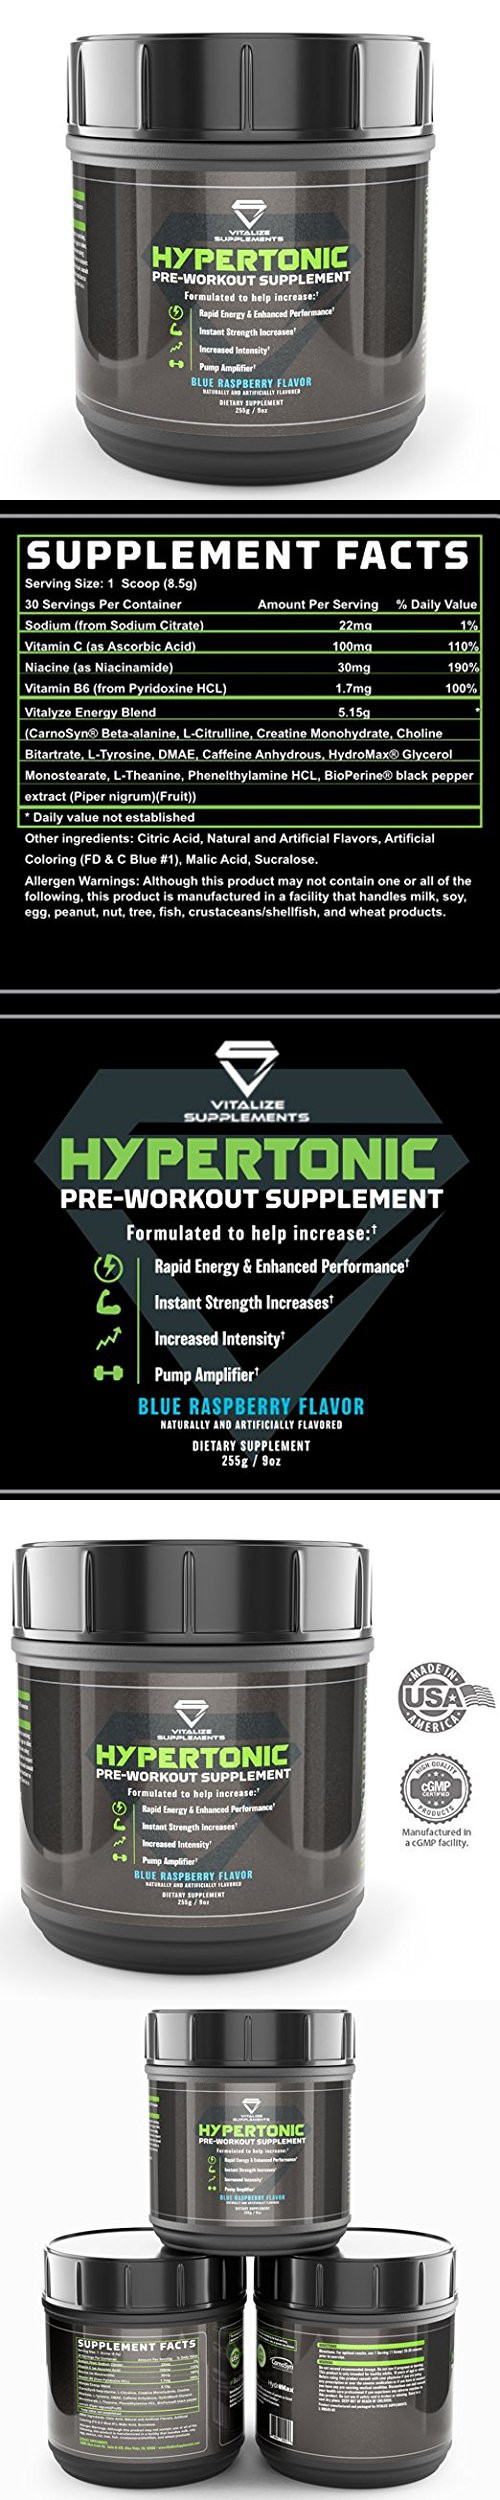 Pre Workout Vitalize Hypertonic With Dmae Increases Energy Performance Strength Endurance And Intensity For Men A How To Increase Energy Preworkout Energy